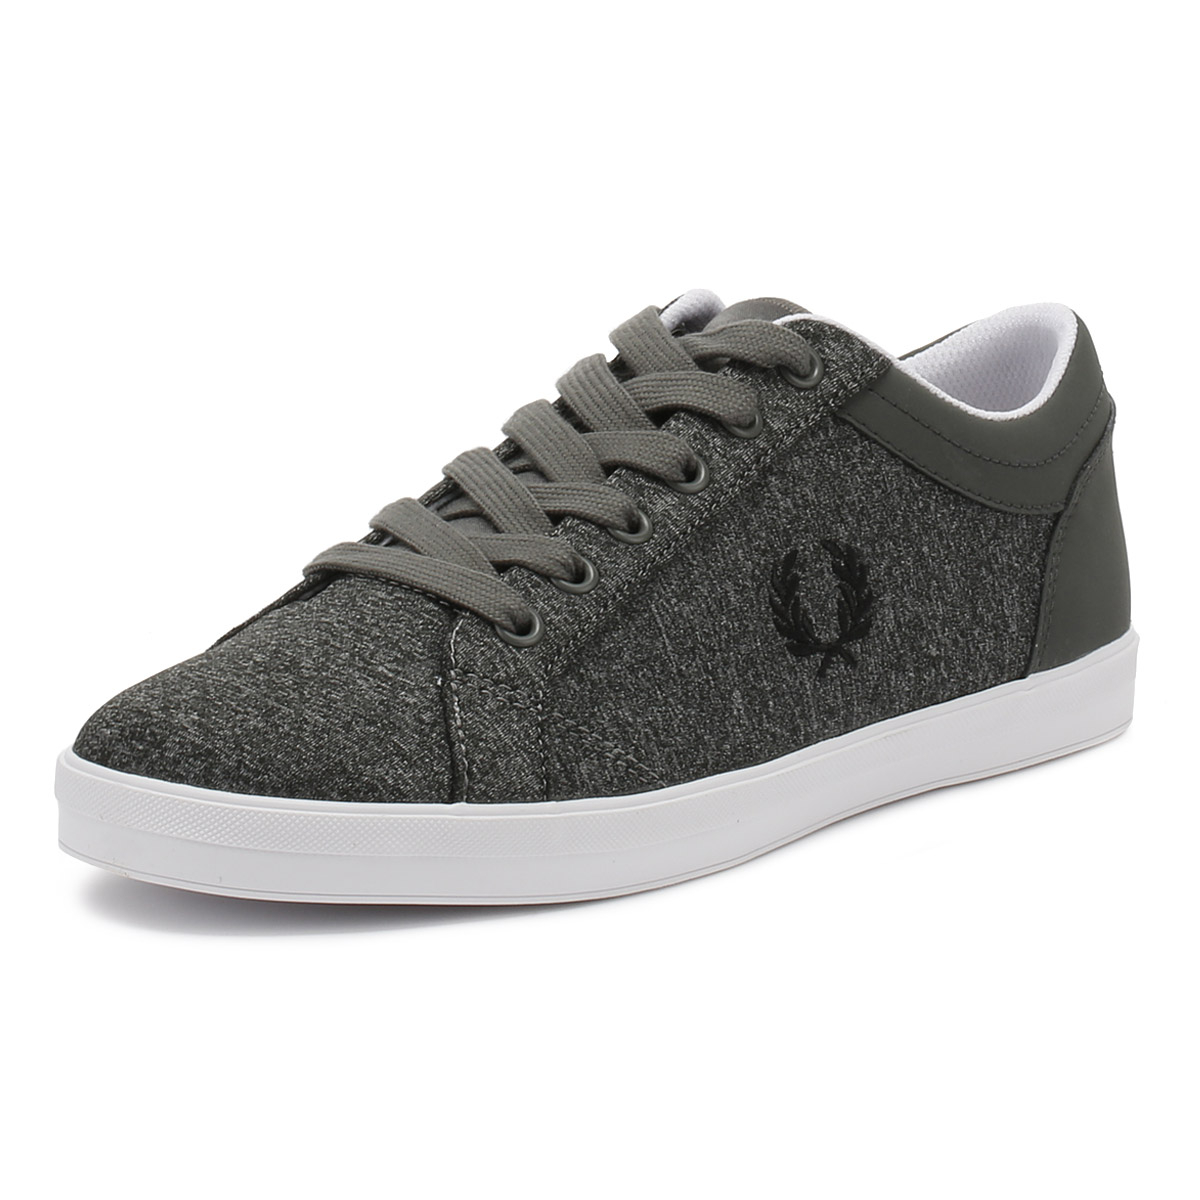 FROT Perry   Herren Trainers Falcon Grau Grau Falcon Baseline Marl Lace Up Sport Casual Schuhes 4a4f7e